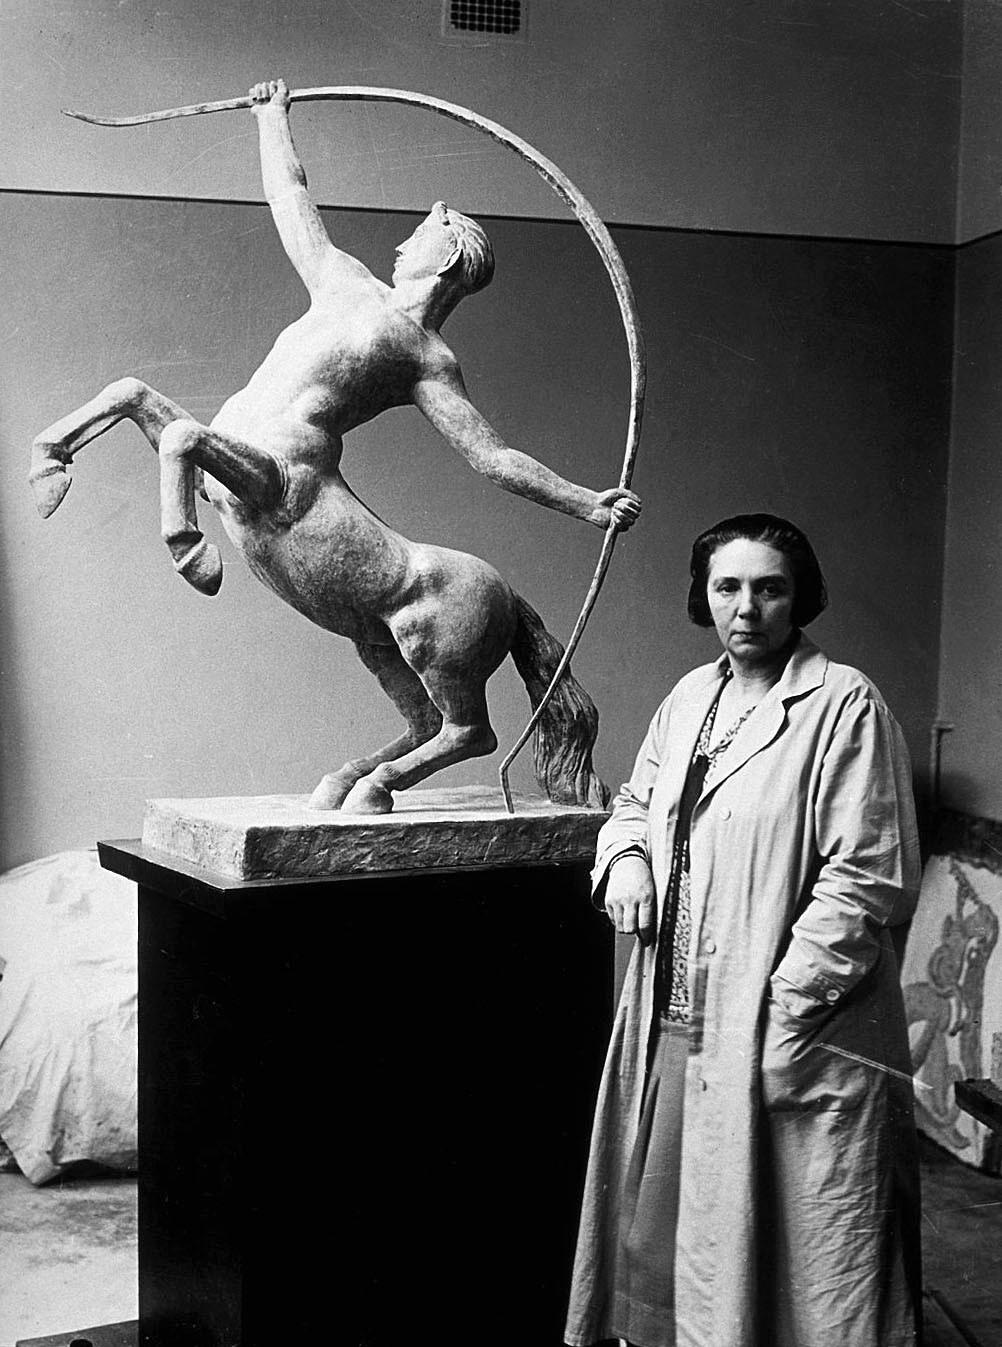 Sigrid Fridman with her model for Kentauren. Photographer and year unknown. Image source: Wikimedia Commons